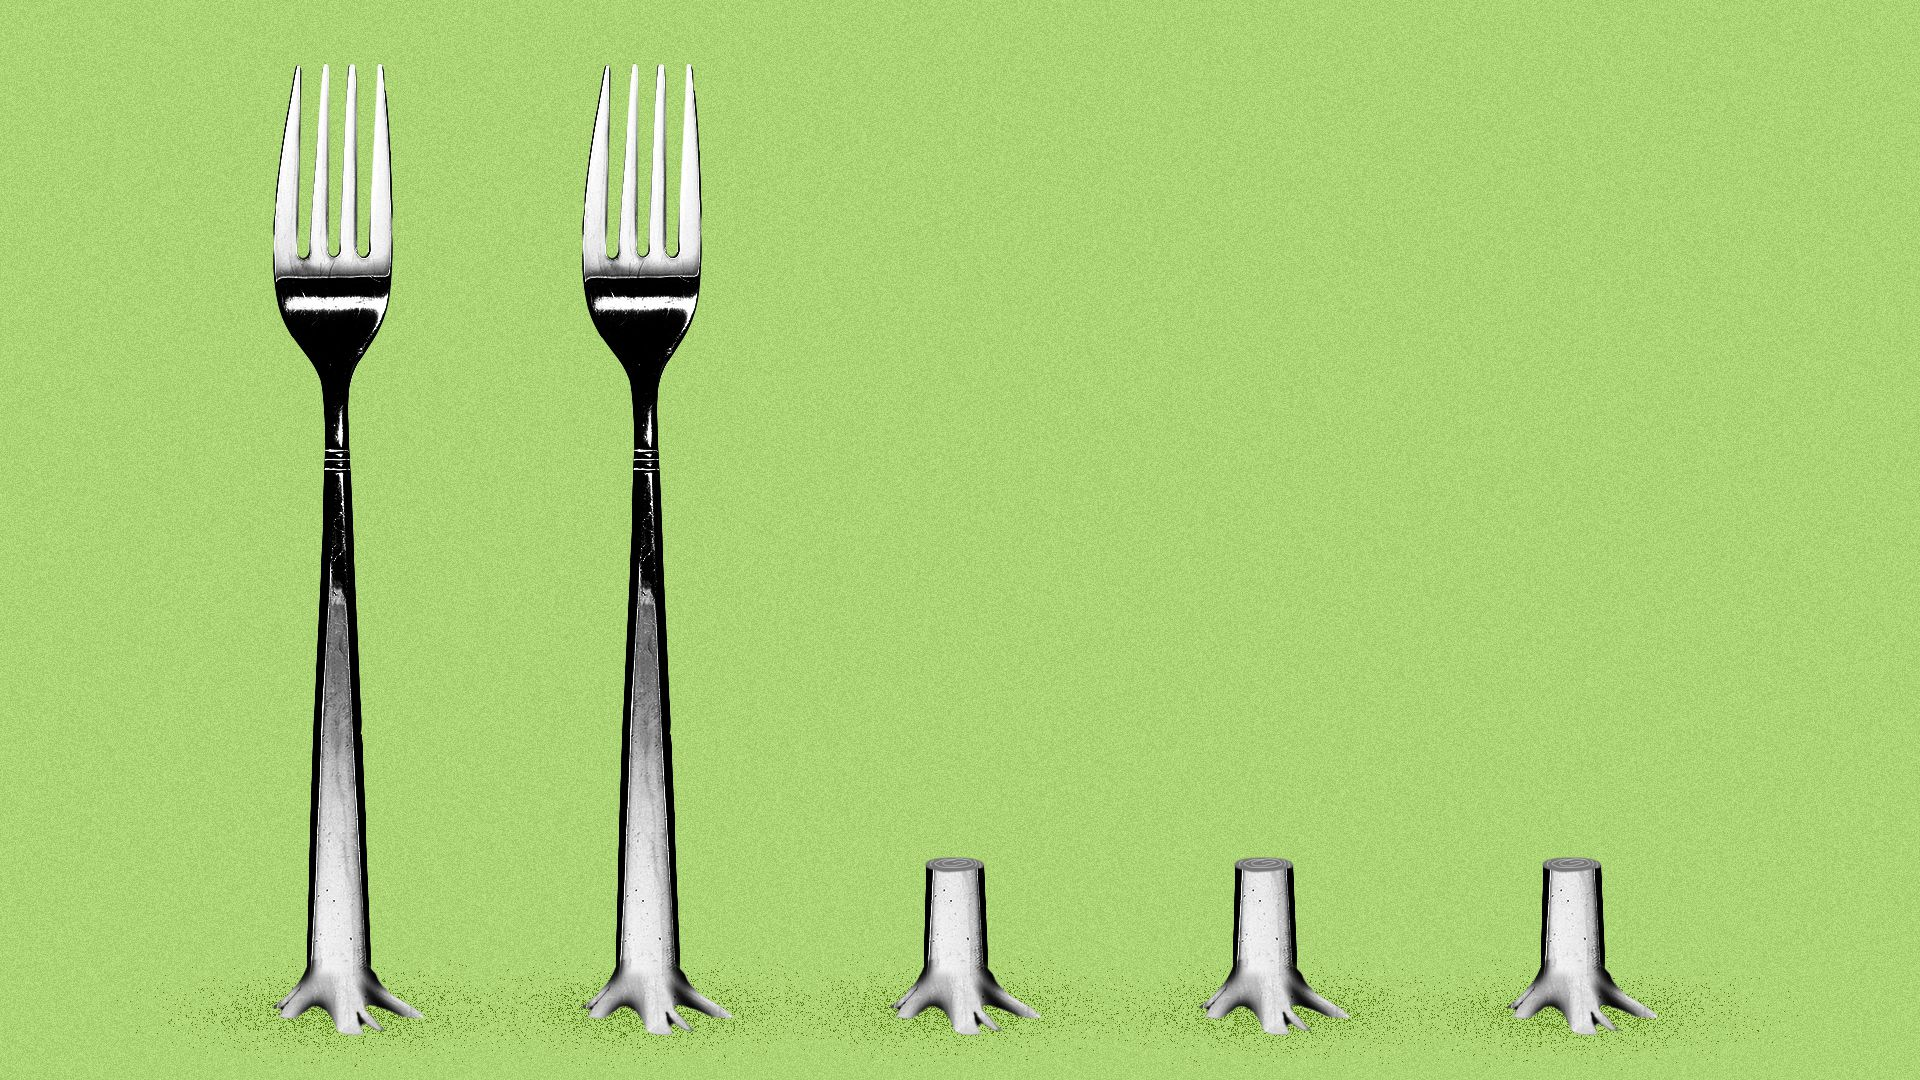 Illustration of forks being cut down as if they were trees.